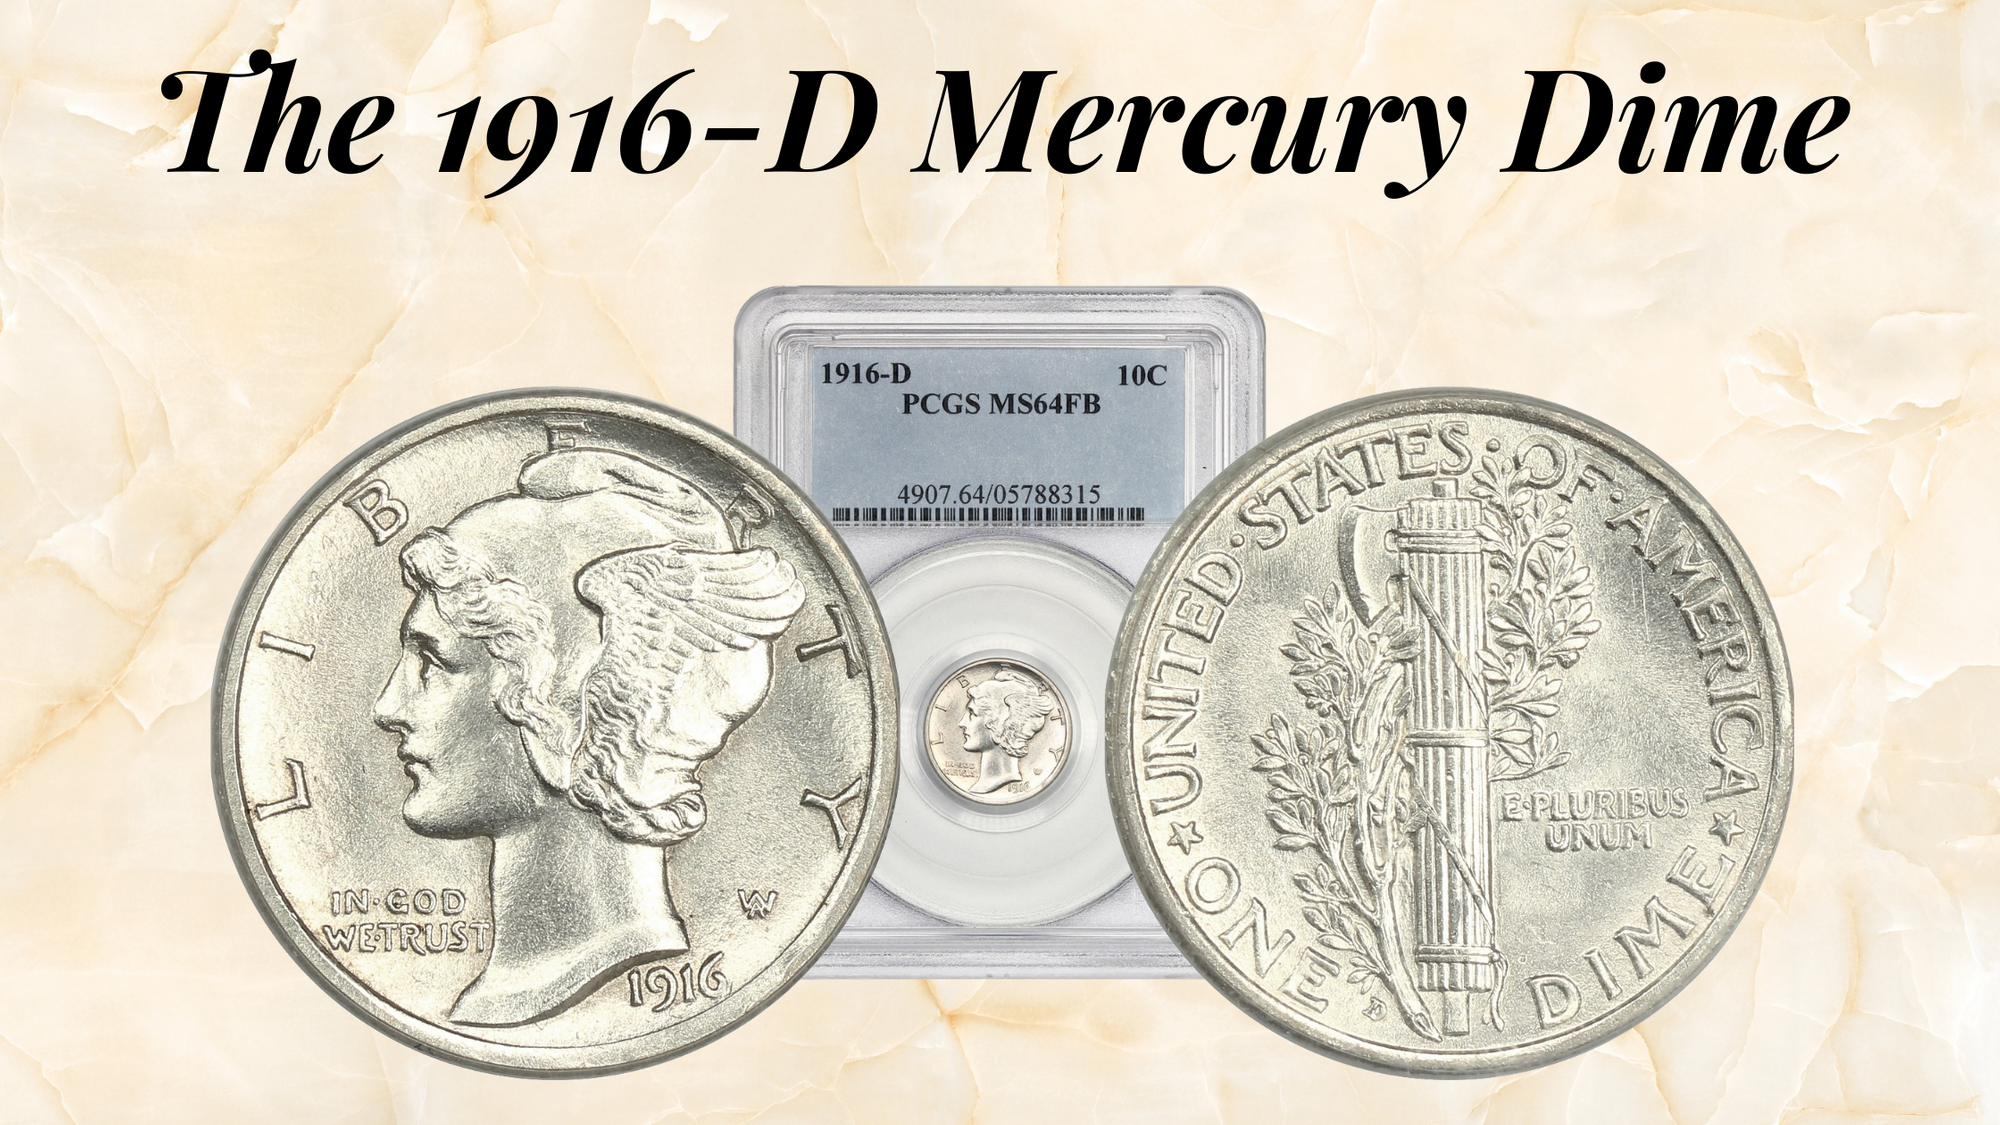 The 1916-D Mercury Dime